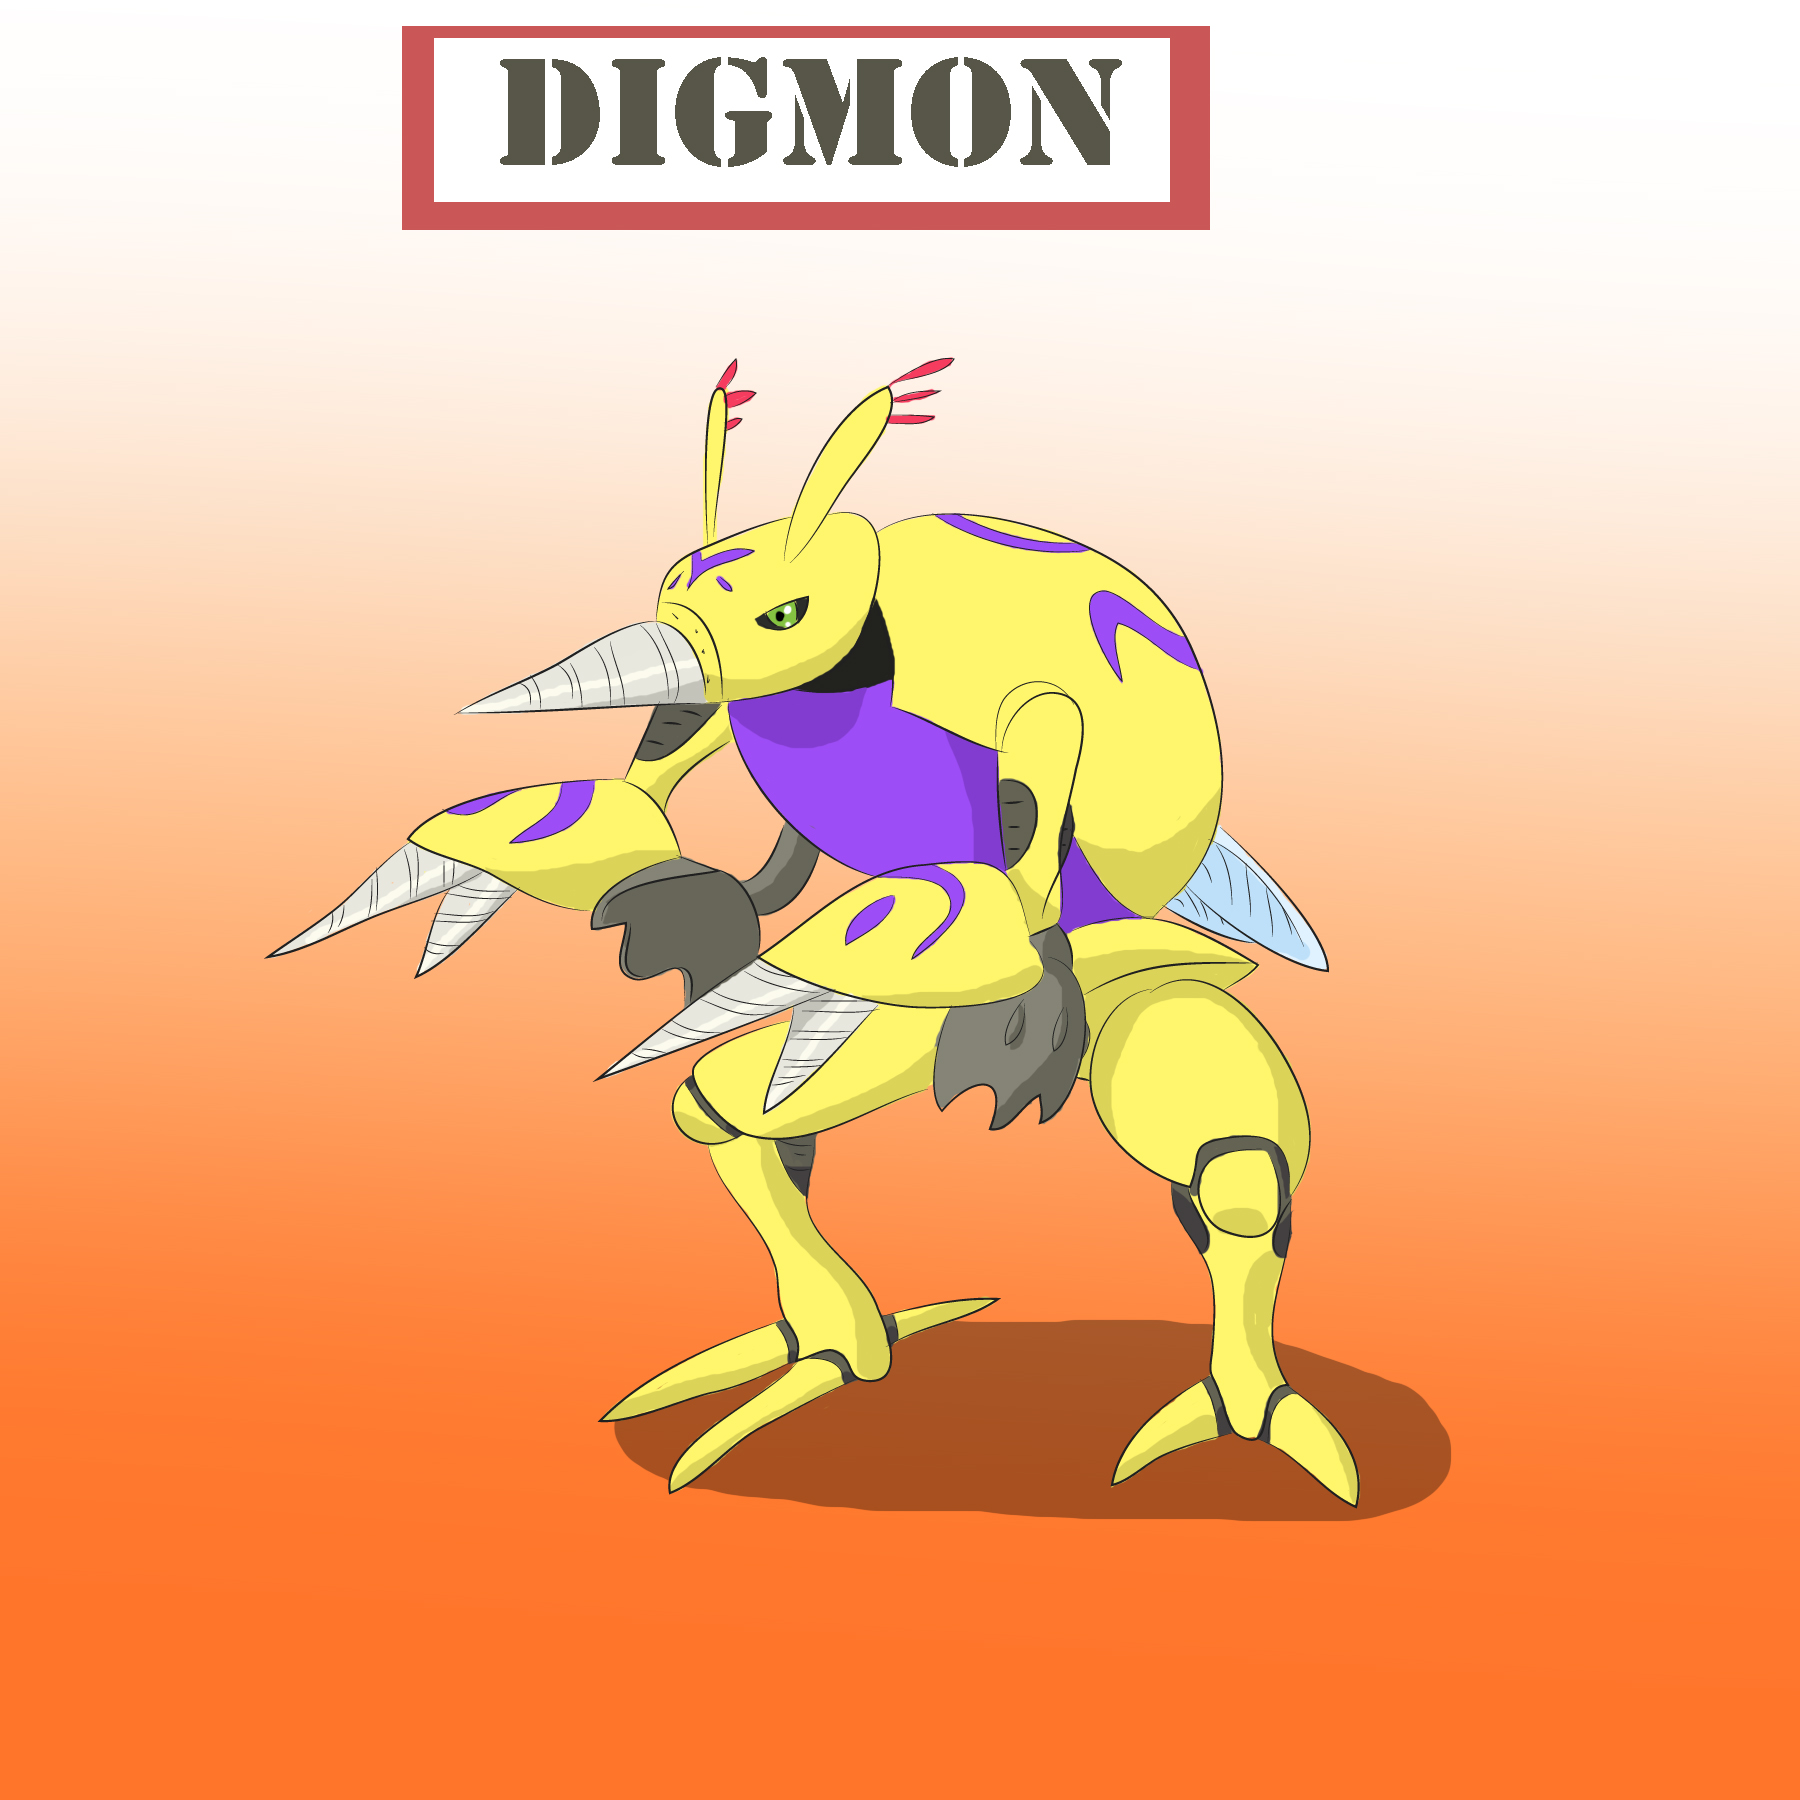 Digmon - The Drill of Power by Louisetheanimator